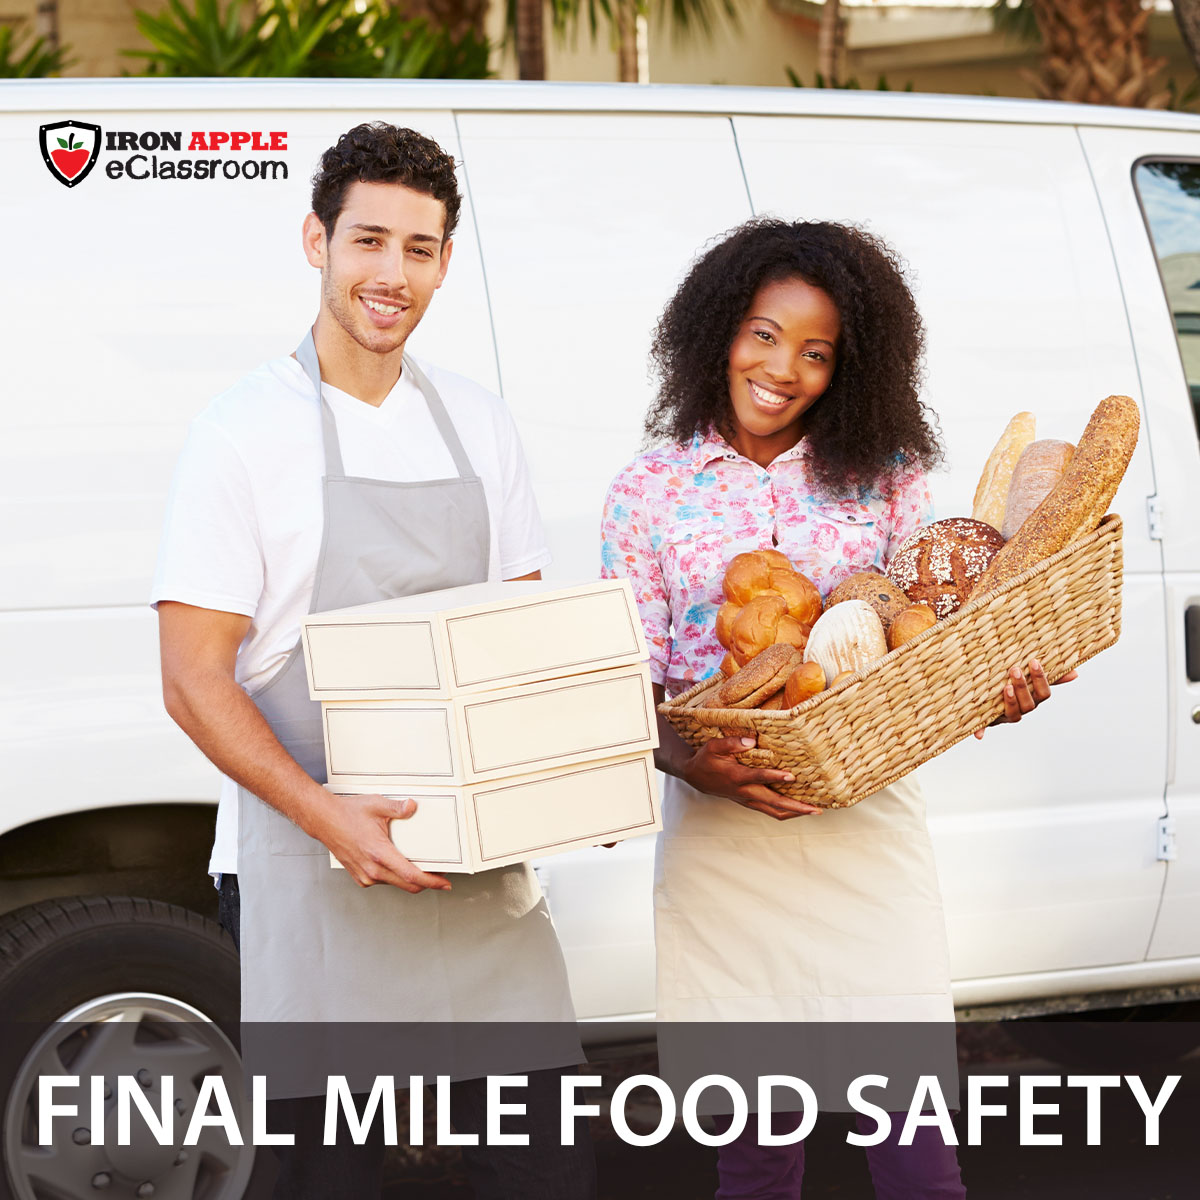 Final Mile Food Safety Training Module - Iron Apple eClassroom